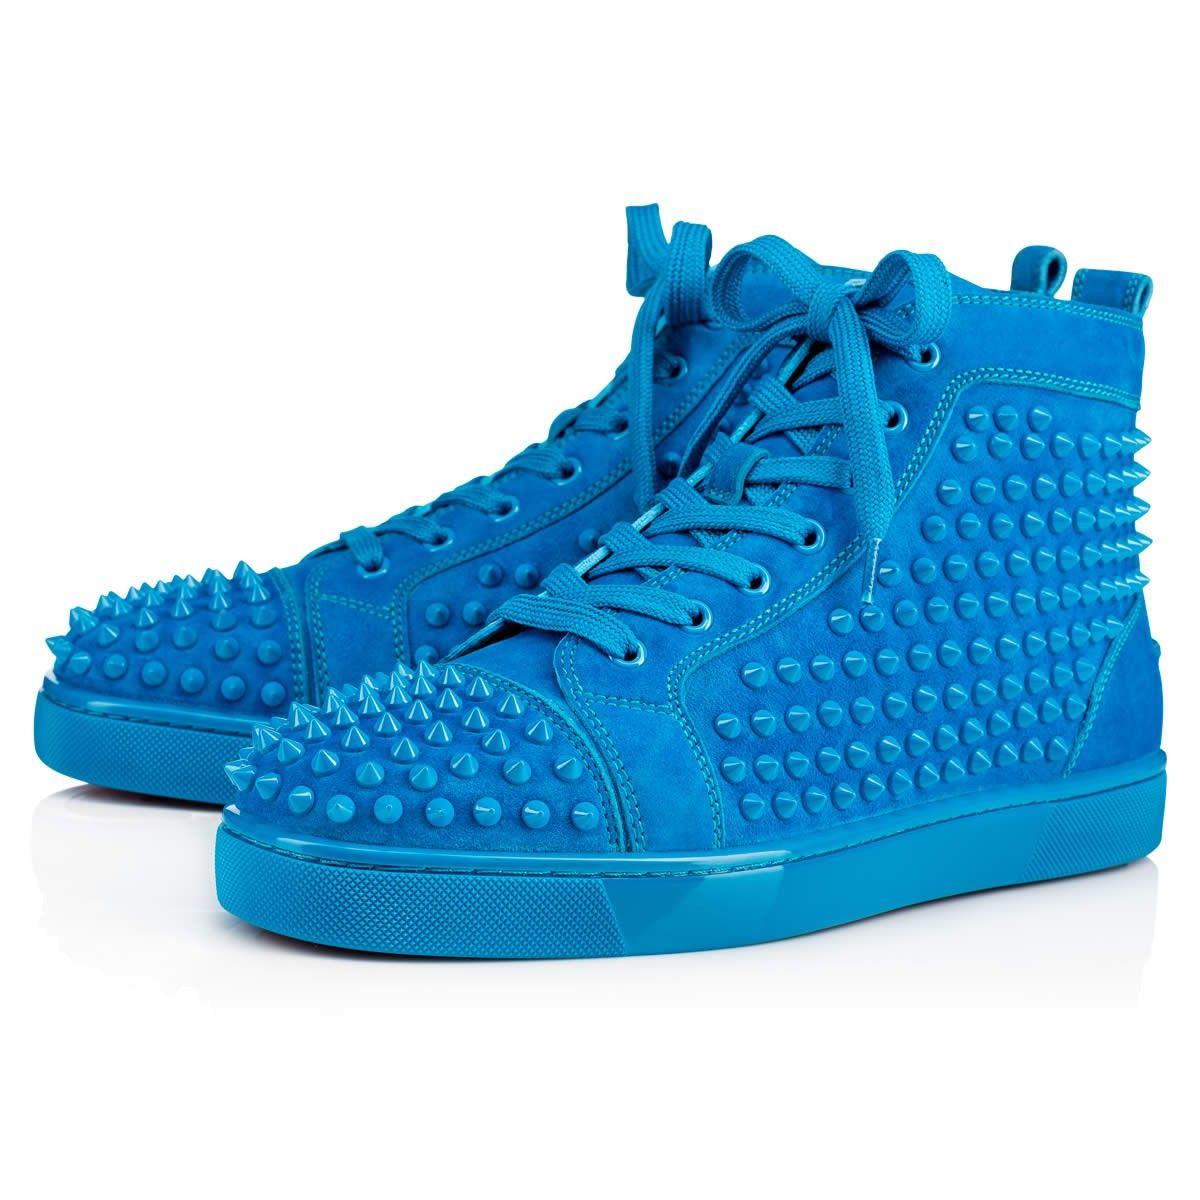 4b1078261f58 CHRISTIAN LOUBOUTIN Louis Spikes Men S Flat Egyptian Blue Suede - Men Shoes  - Christian Louboutin.  christianlouboutin  shoes